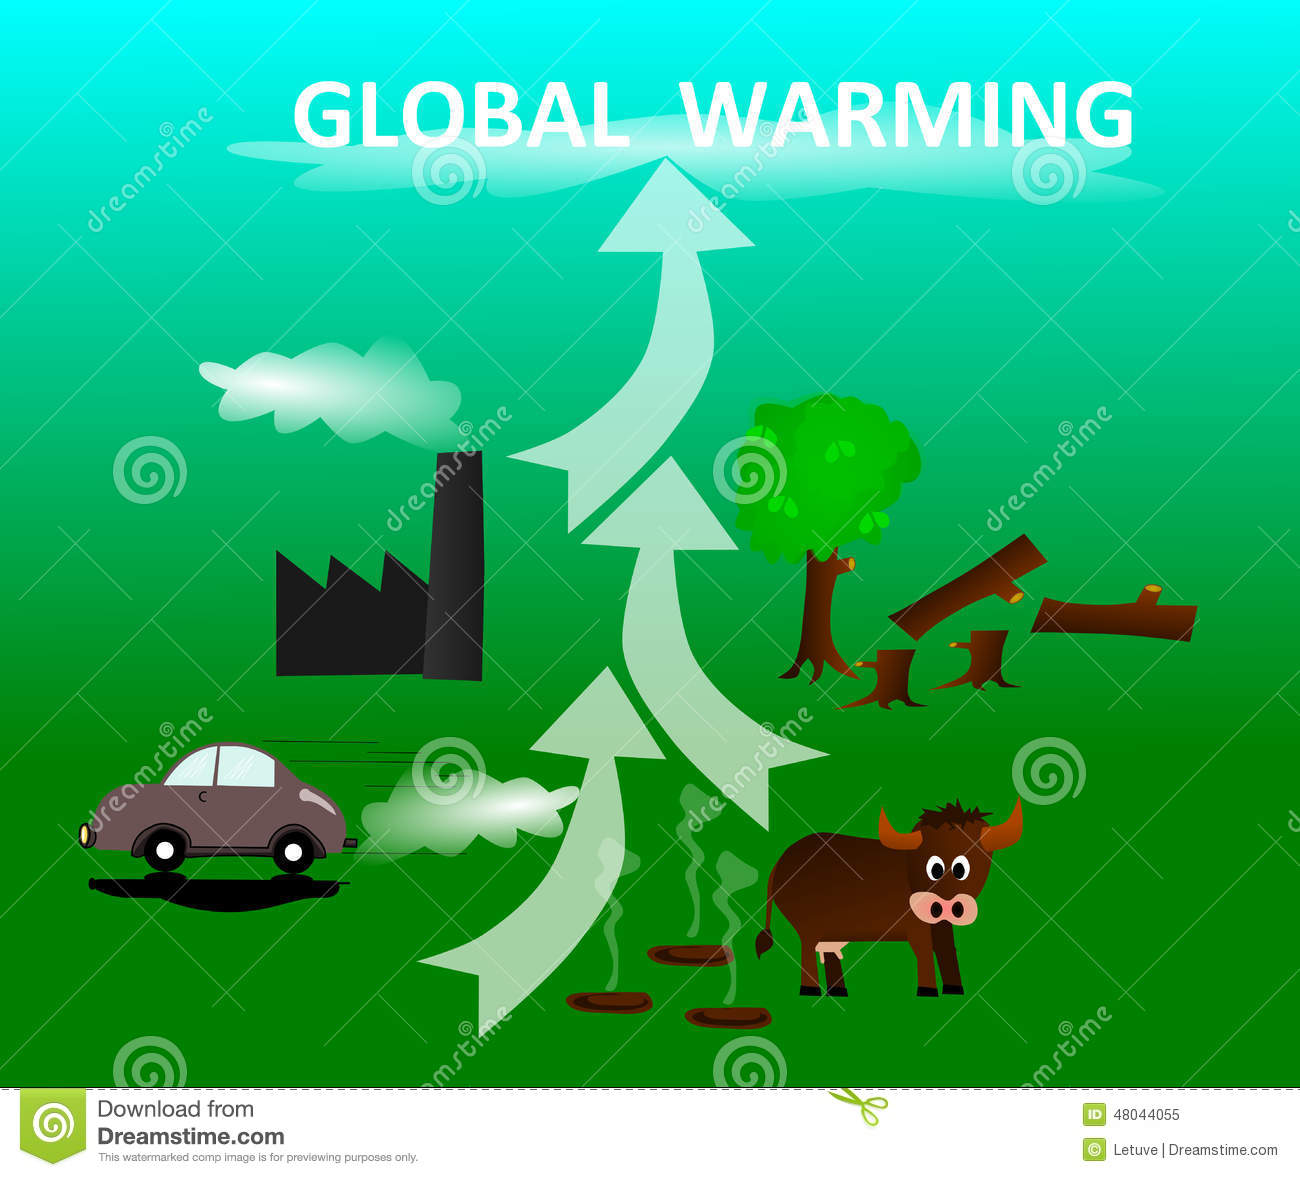 Scientists Agree: Global Warming is Happening and Humans are the Primary Cause